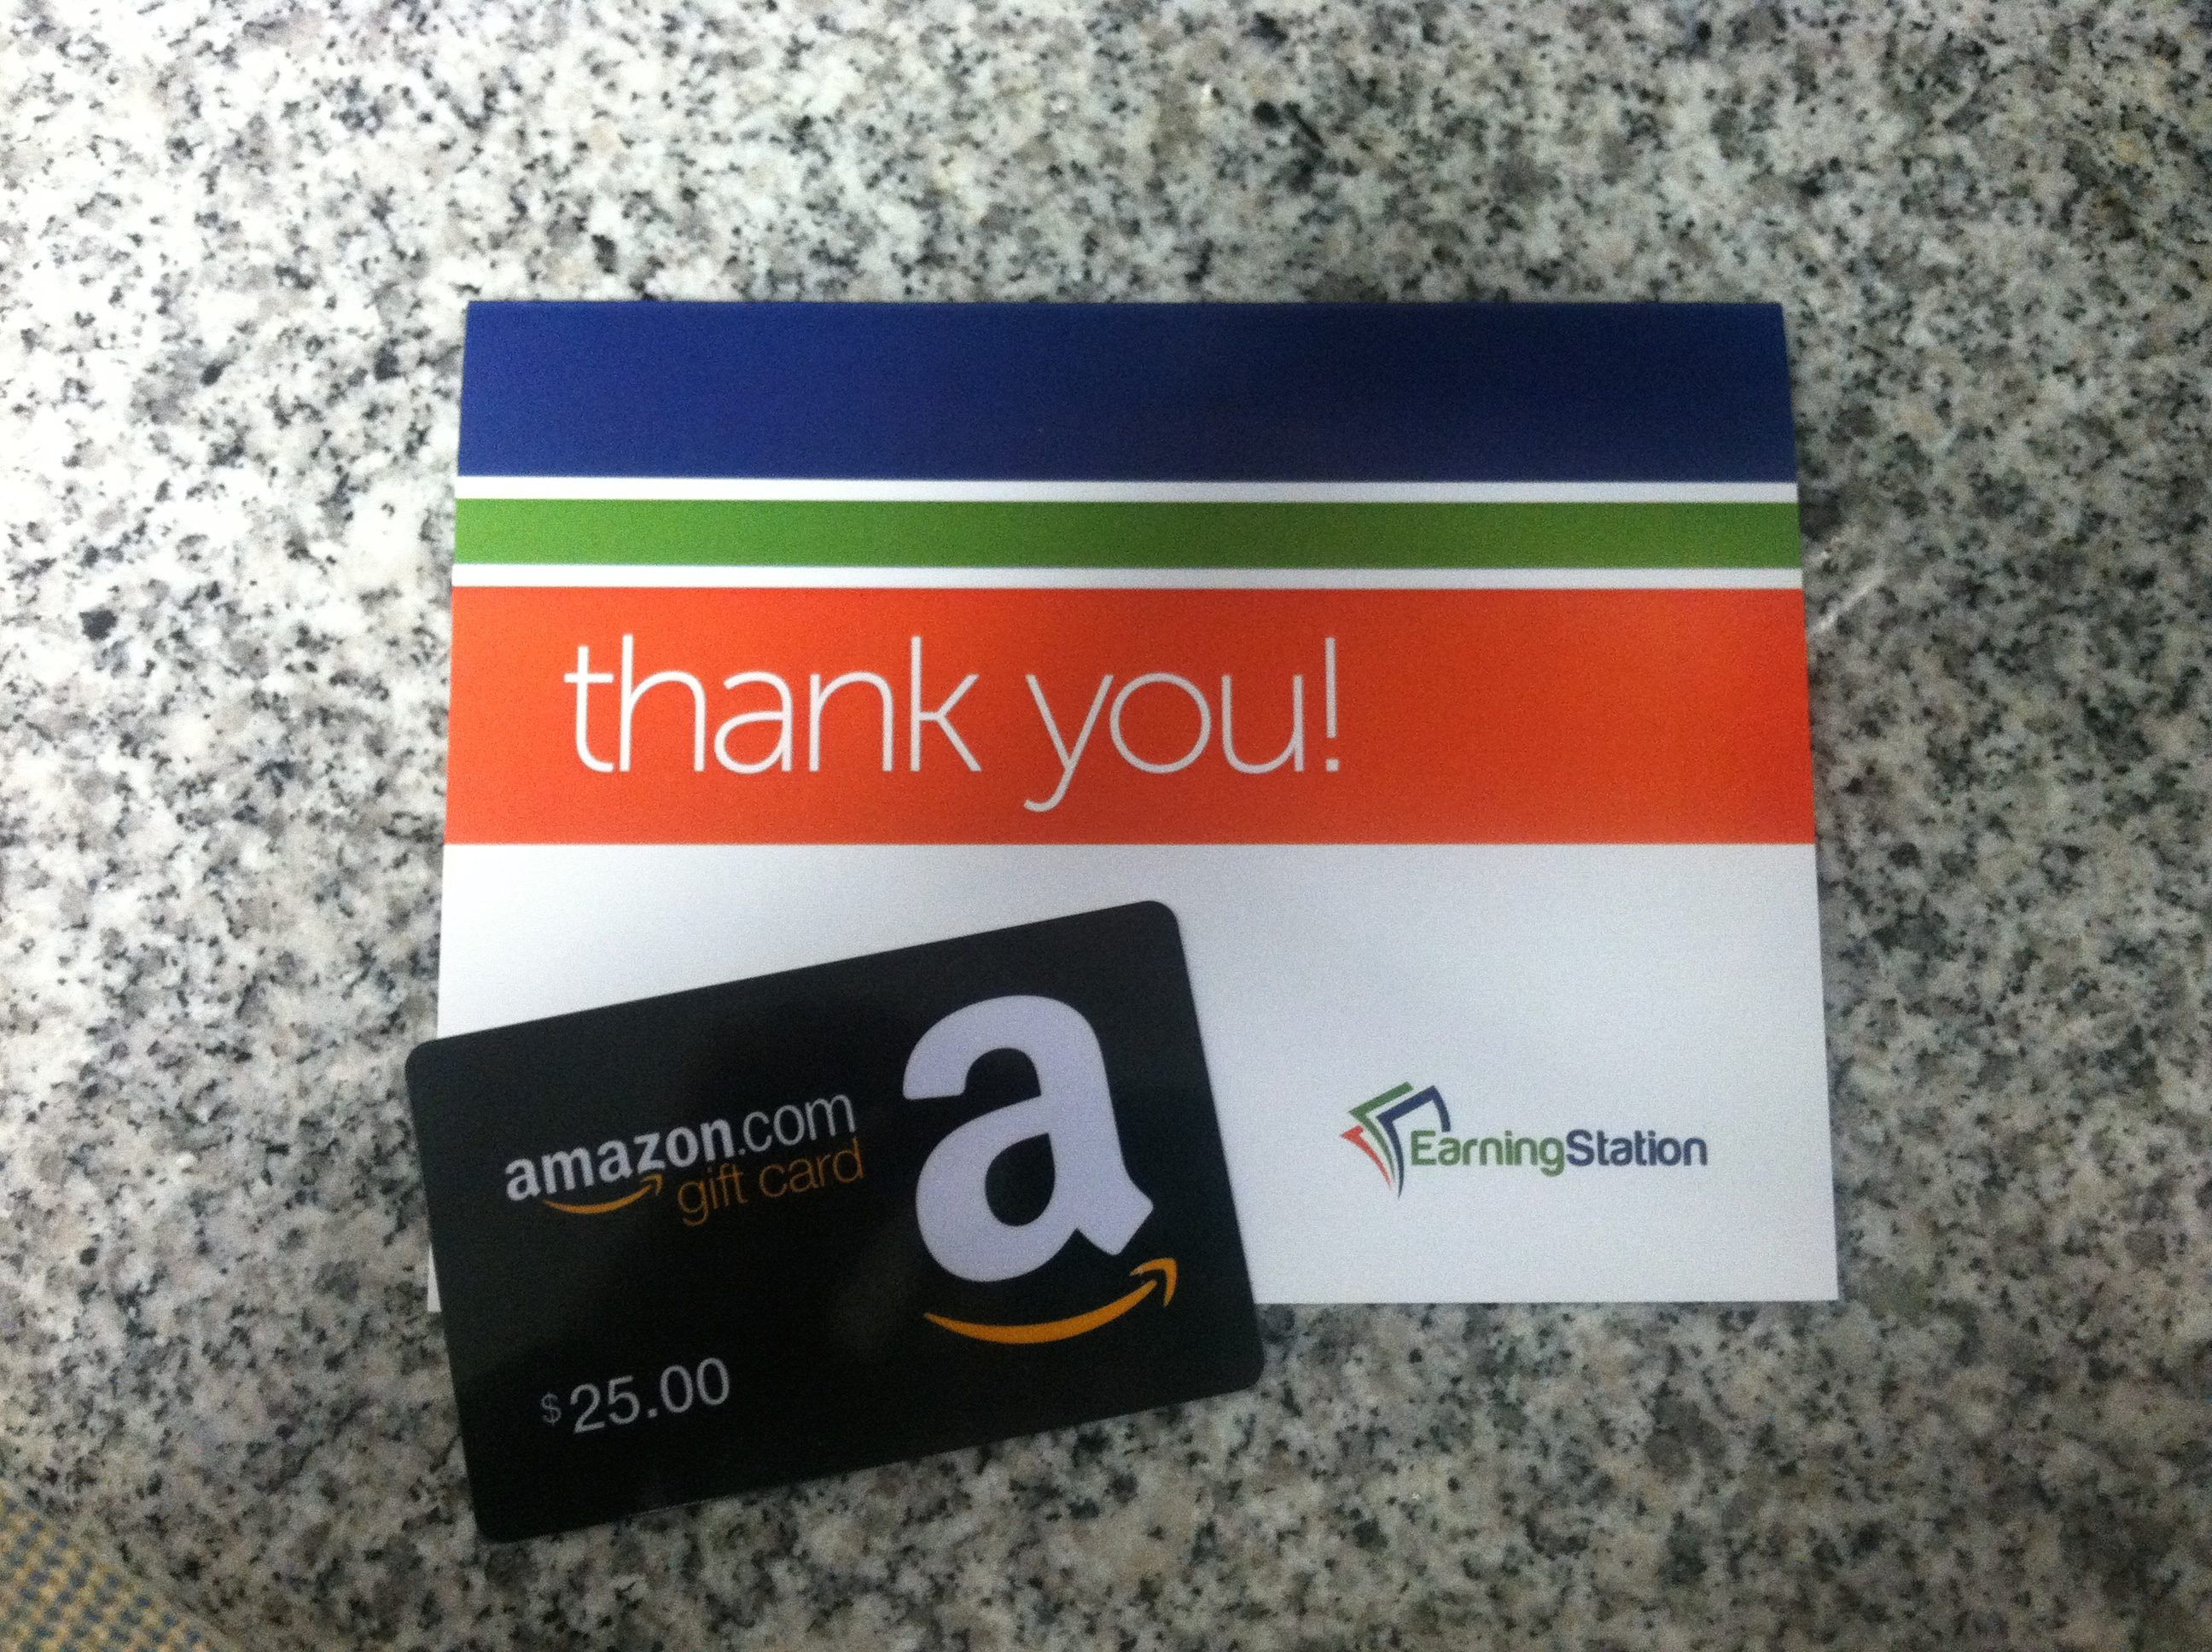 Earningstation candy corn giveaway candy corn amazon